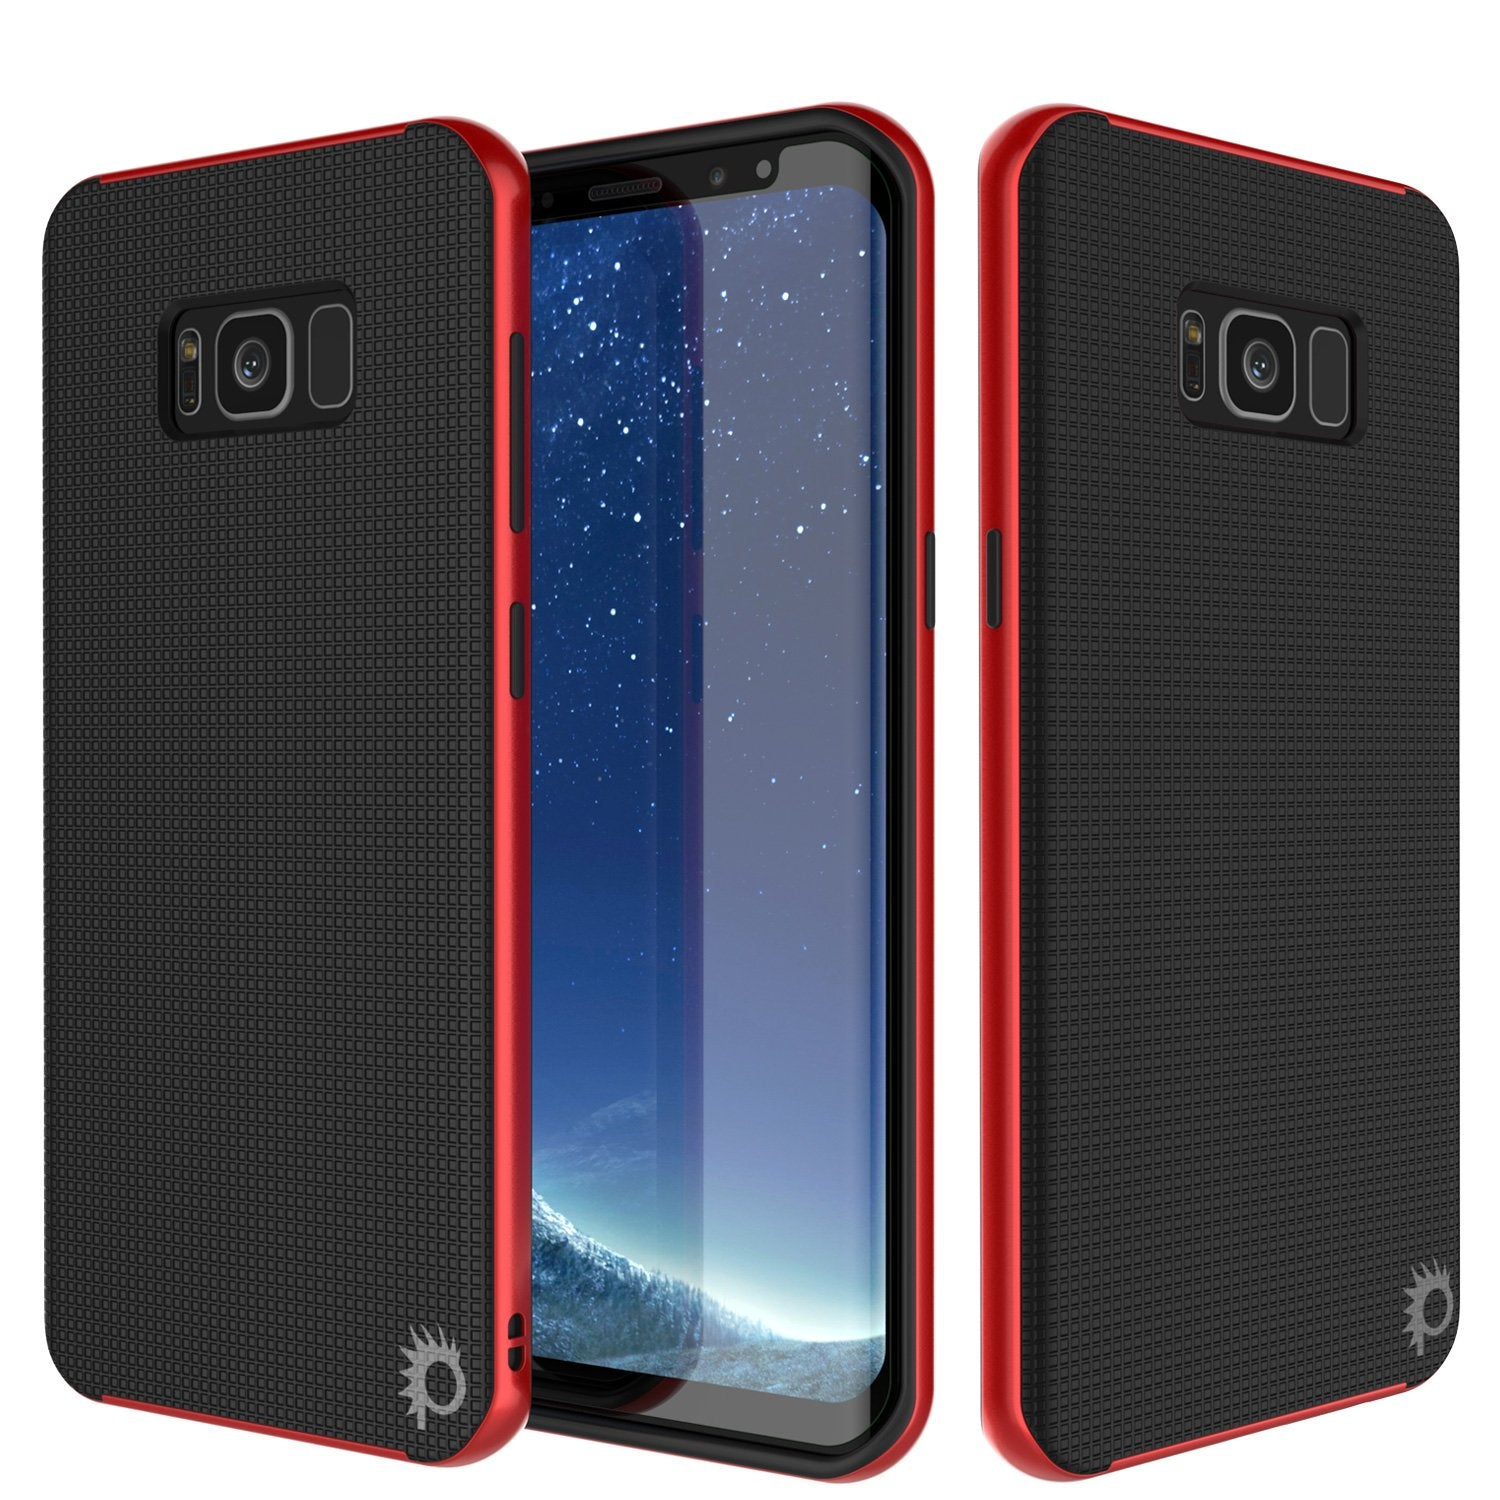 Galaxy S8 Case, PunkCase [Stealth Series] Hybrid 3-Piece Shockproof Dual Layer Cover [Non-Slip] [Soft TPU + PC Bumper] with PUNKSHIELD Screen Protector for Samsung S8 Edge [Red] - PunkCase NZ